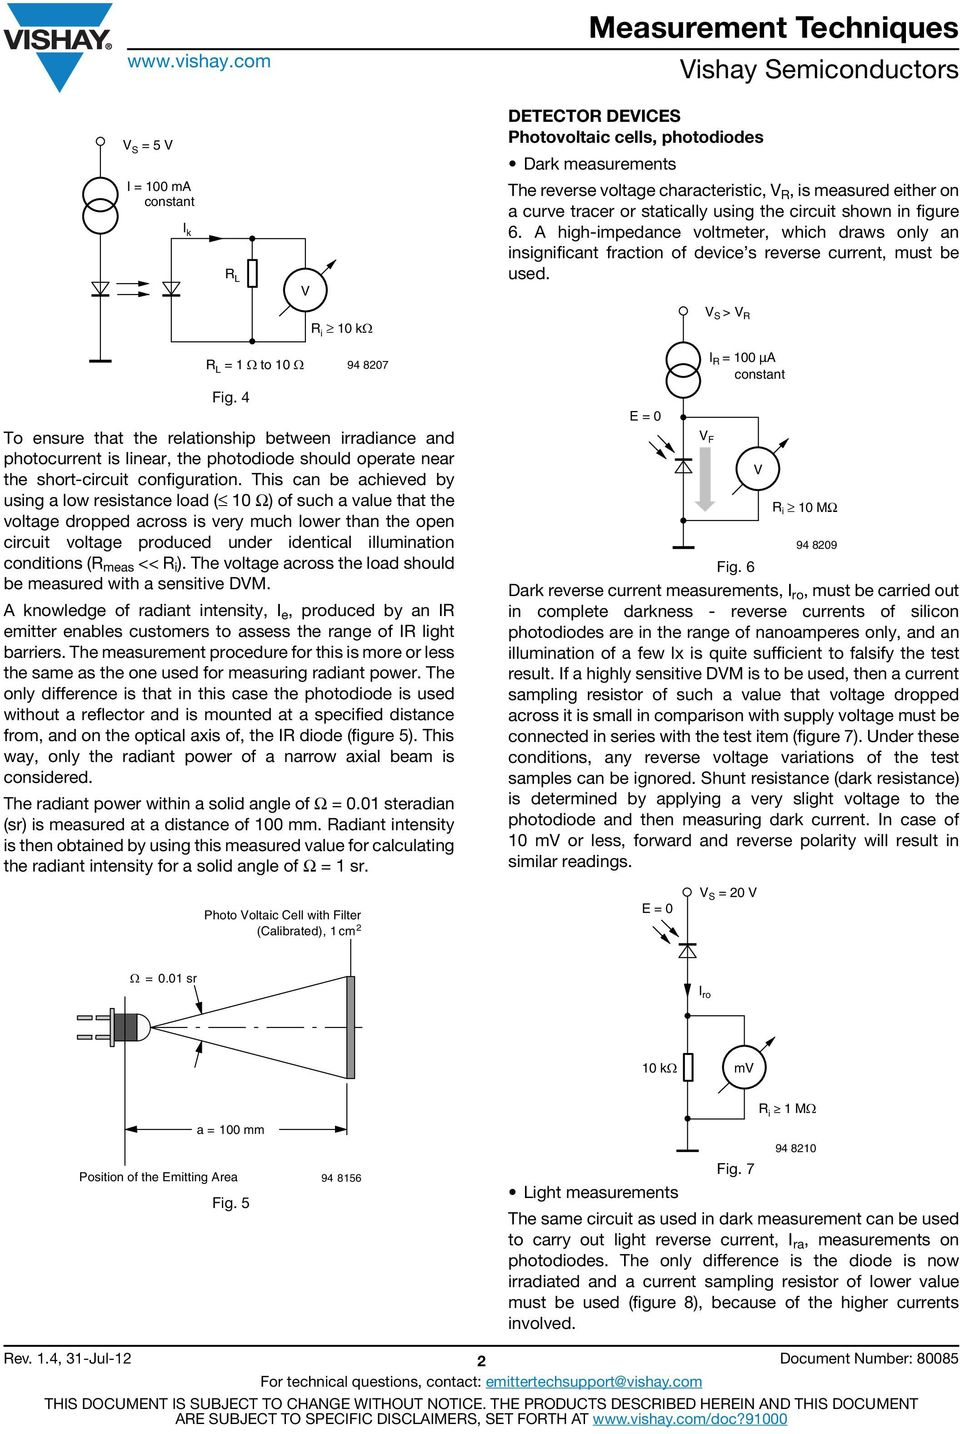 Measurement Techniques Pdf Bpw34 Photodiode Circuit 4 R I 1 K To Ensure That The Relationship Between Irradiance And Photocurrent Is Linear